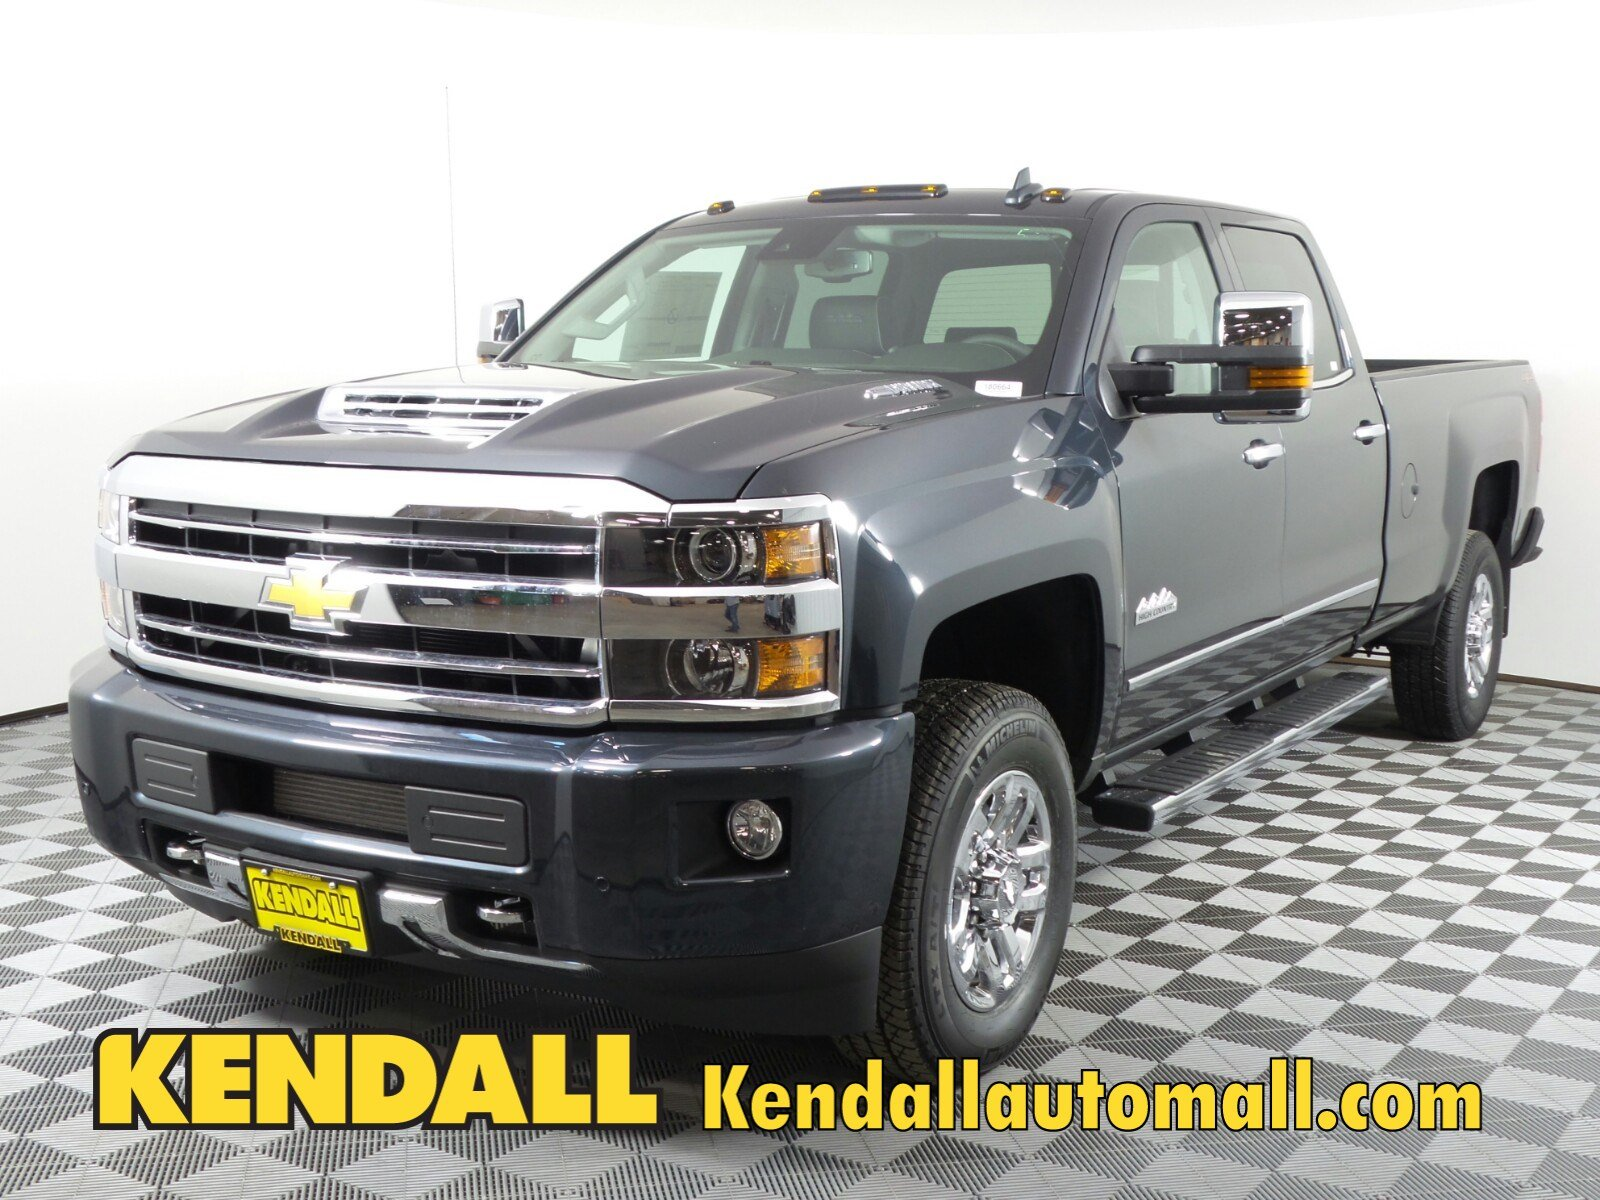 new 2018 chevrolet silverado 3500hd high country 4wd in nampa d180664 kendall at the idaho. Black Bedroom Furniture Sets. Home Design Ideas